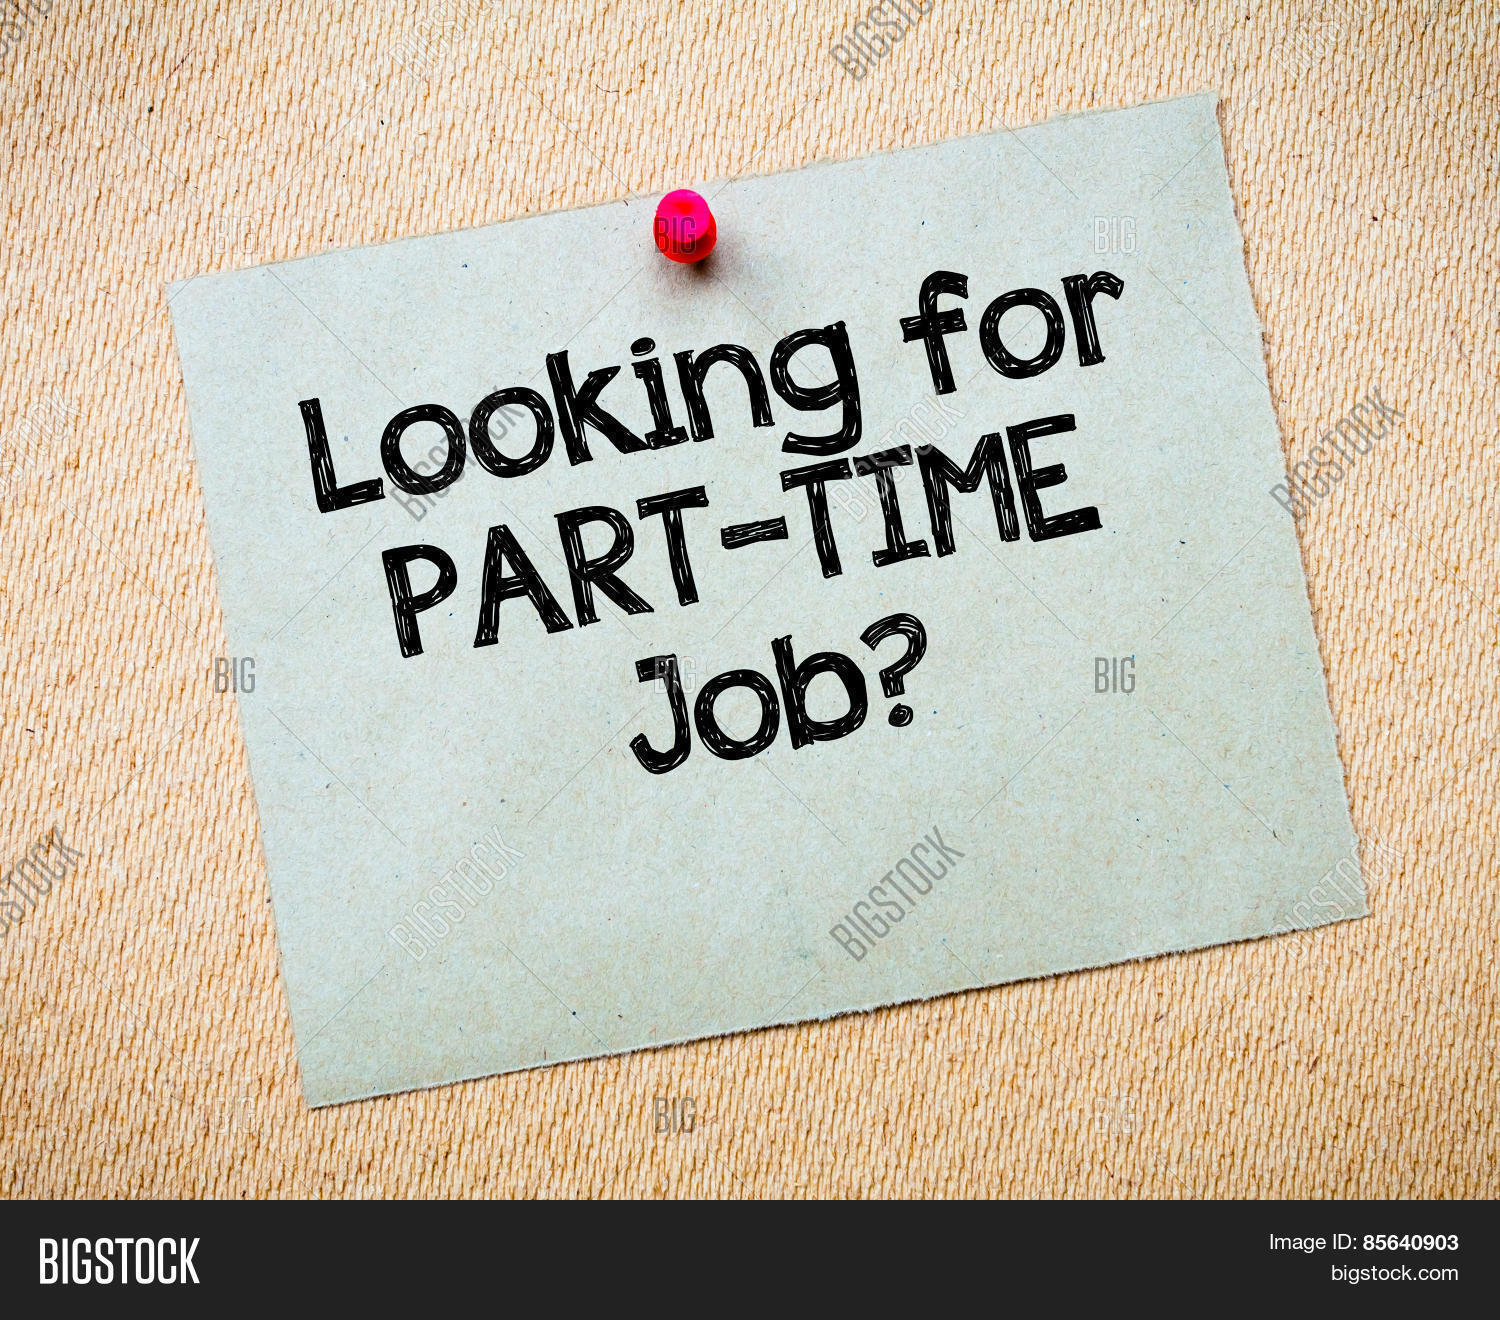 Part Time Jobs in Cork. There are 7 part time jobs in Cork available. Cork is the second largest city in Ireland situated in the province of Ulster. It is a thriving university city, ensuring there's always room for innovation and meeting new people.